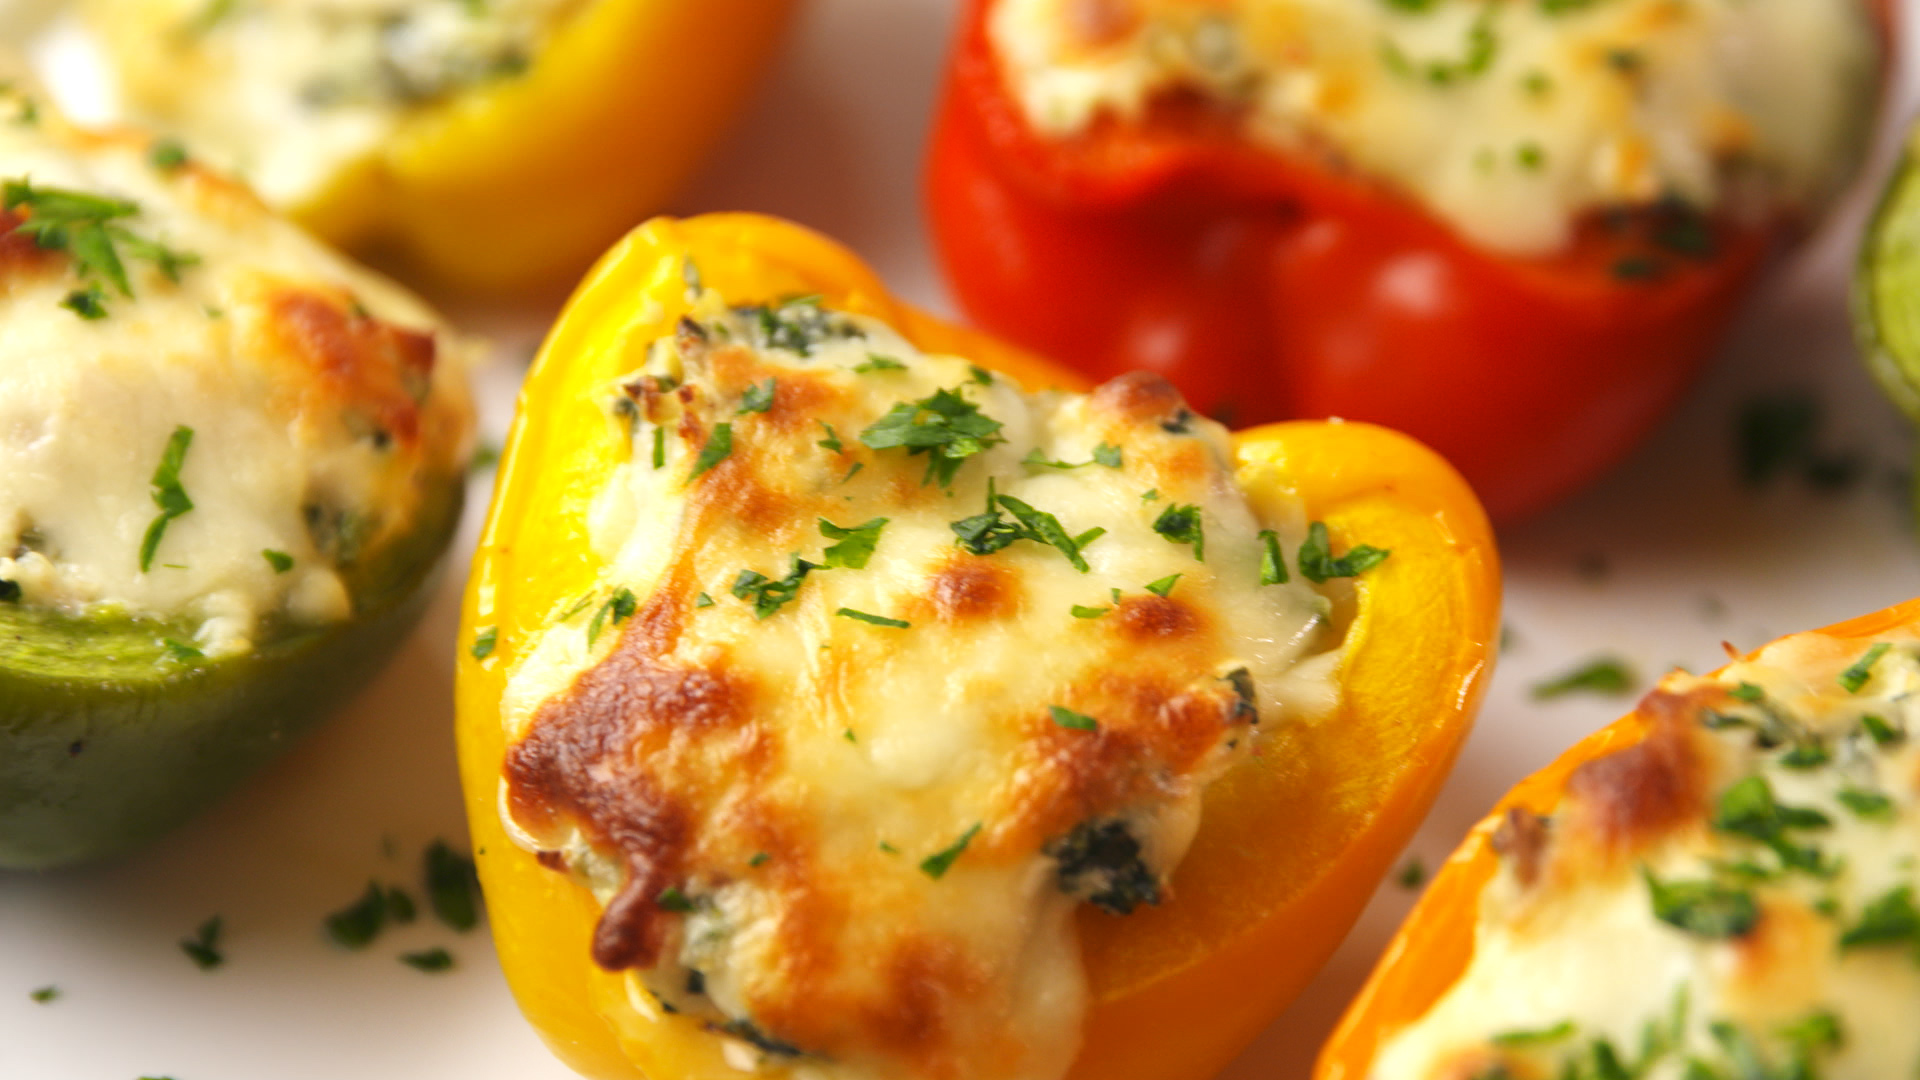 16 Best Stuffed Bell Peppers Recipes - How to Make Stuffed ...